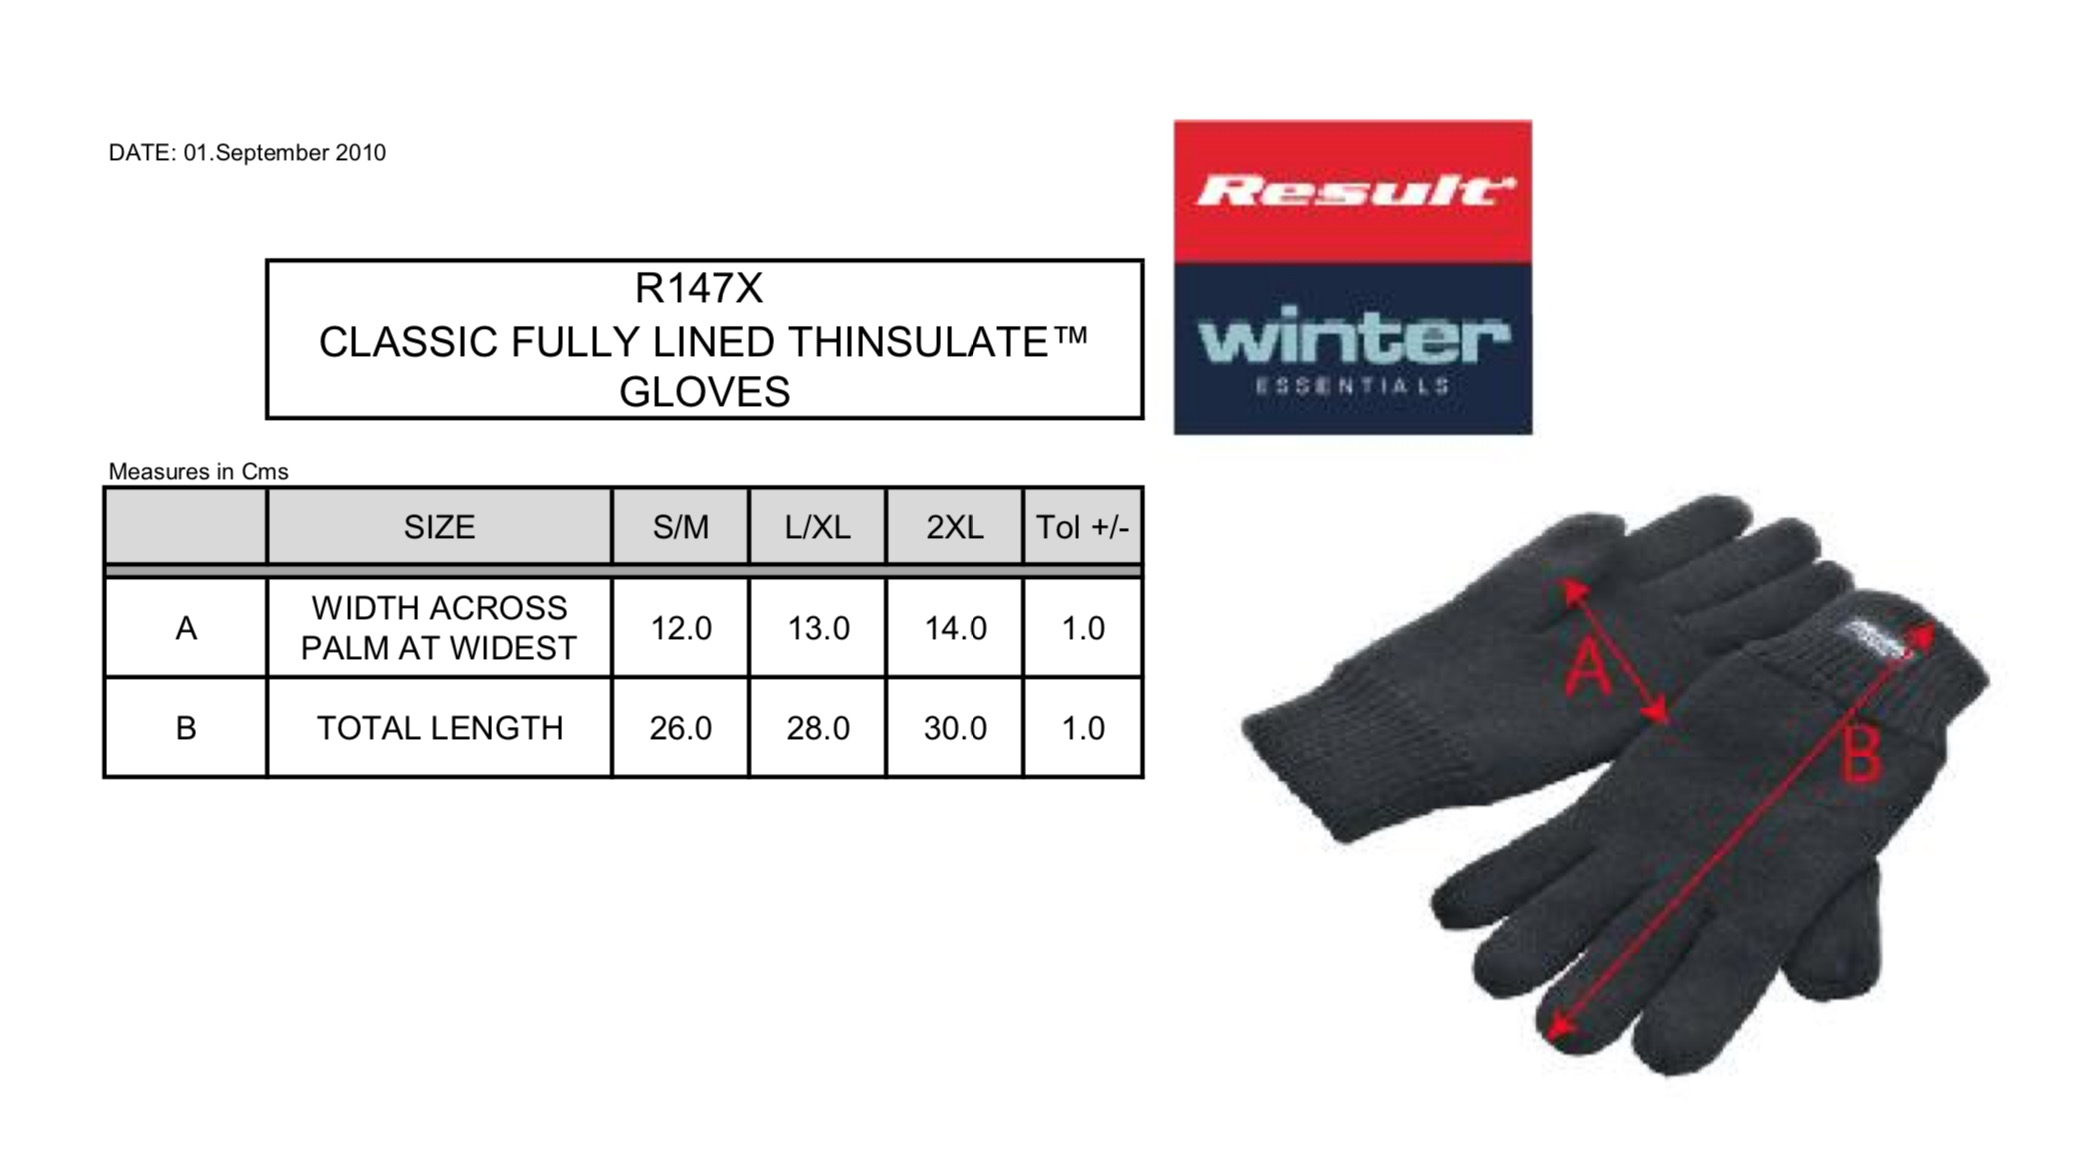 Result: Fully Lined Thinsulate Gloves R147X